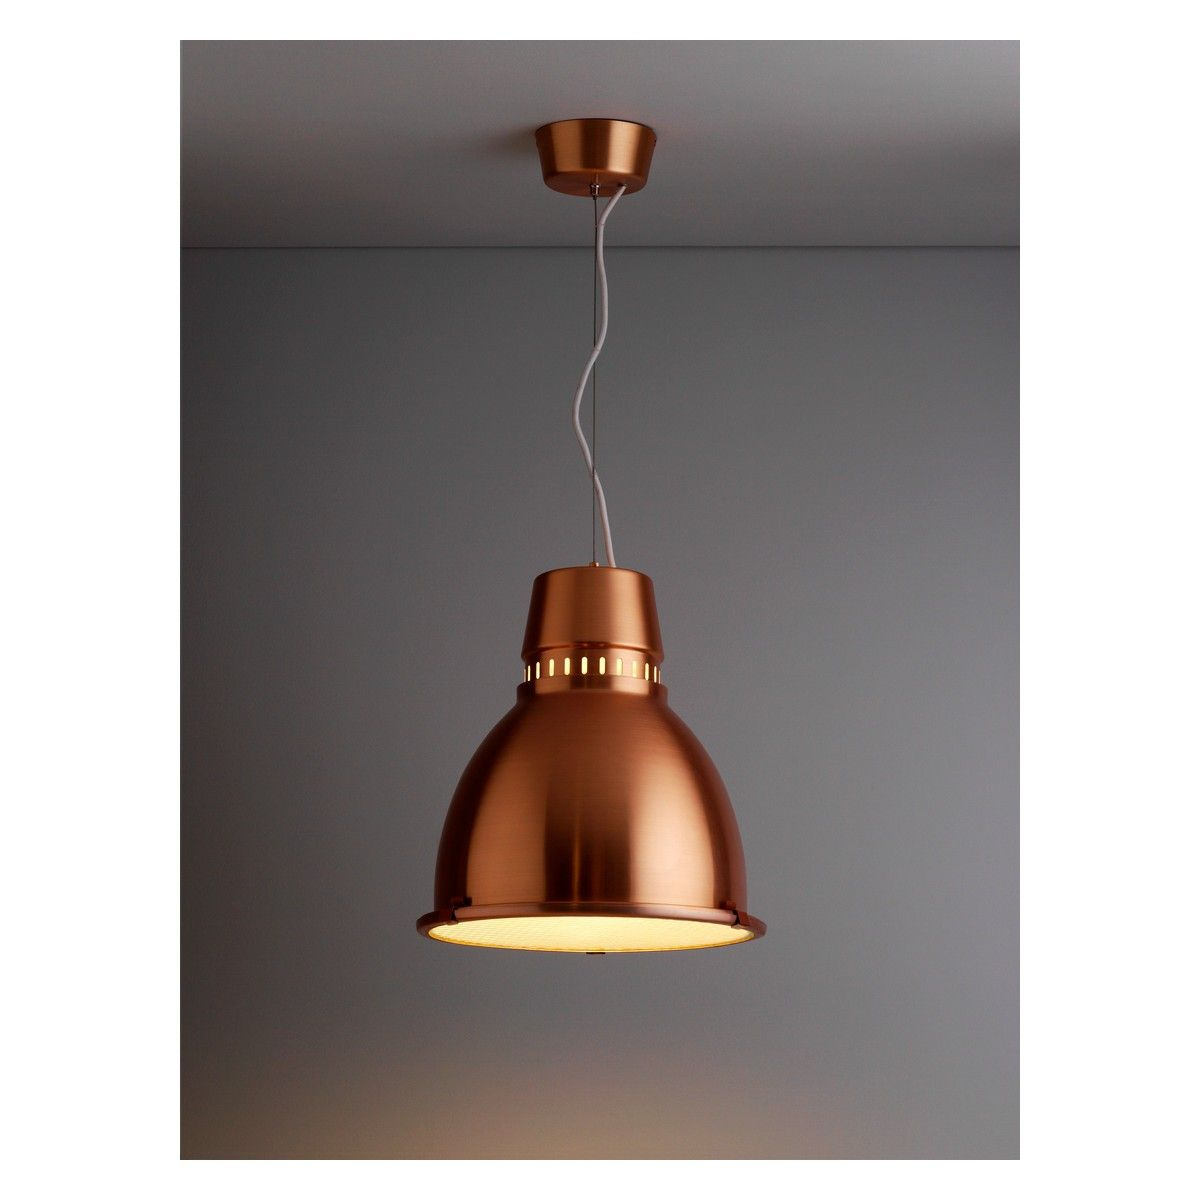 Zoom Lens  sc 1 st  Pinterest & Zoom Lens | living room ideas | Pinterest | Copper metal Ceiling ...